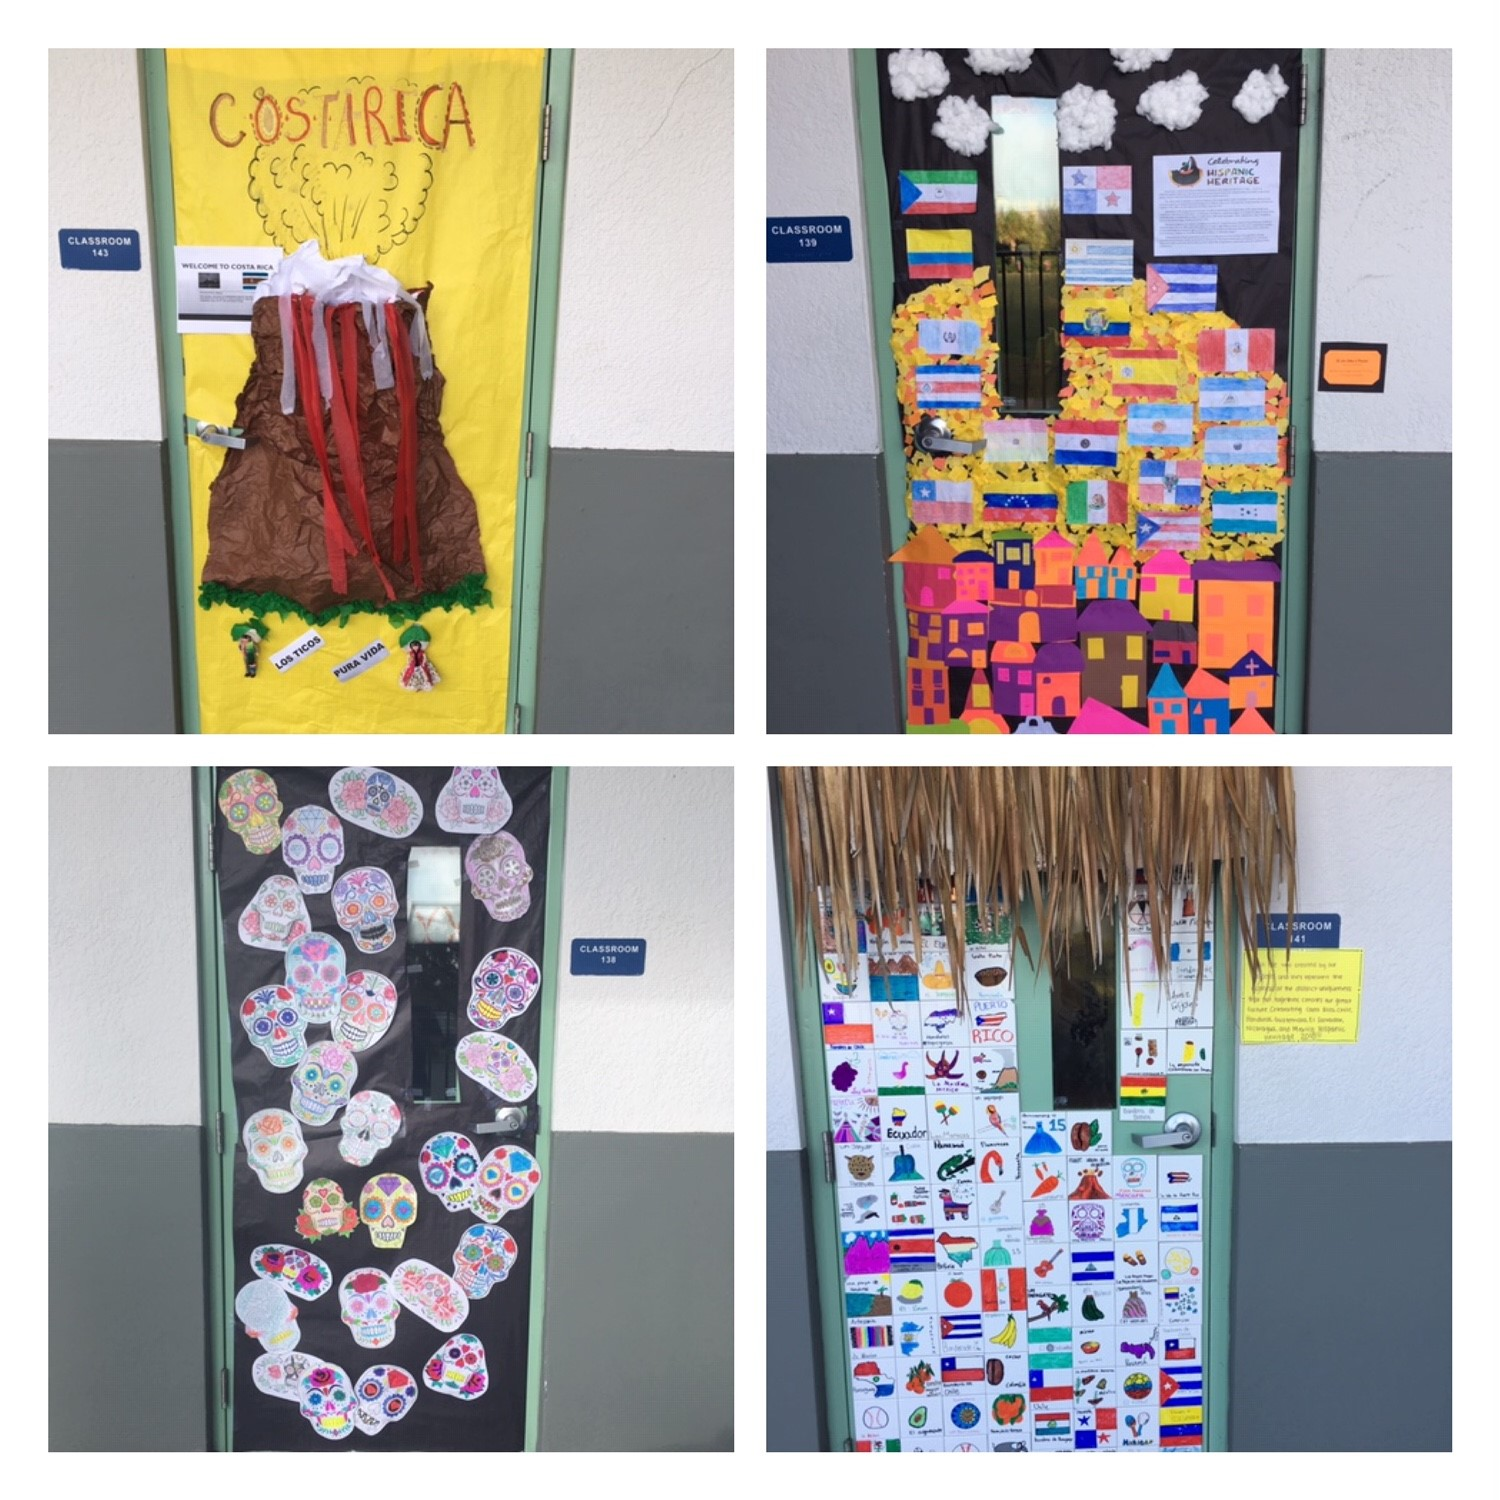 Here are some of the doors that were decorated in honor of Hispanic Heritage Month.